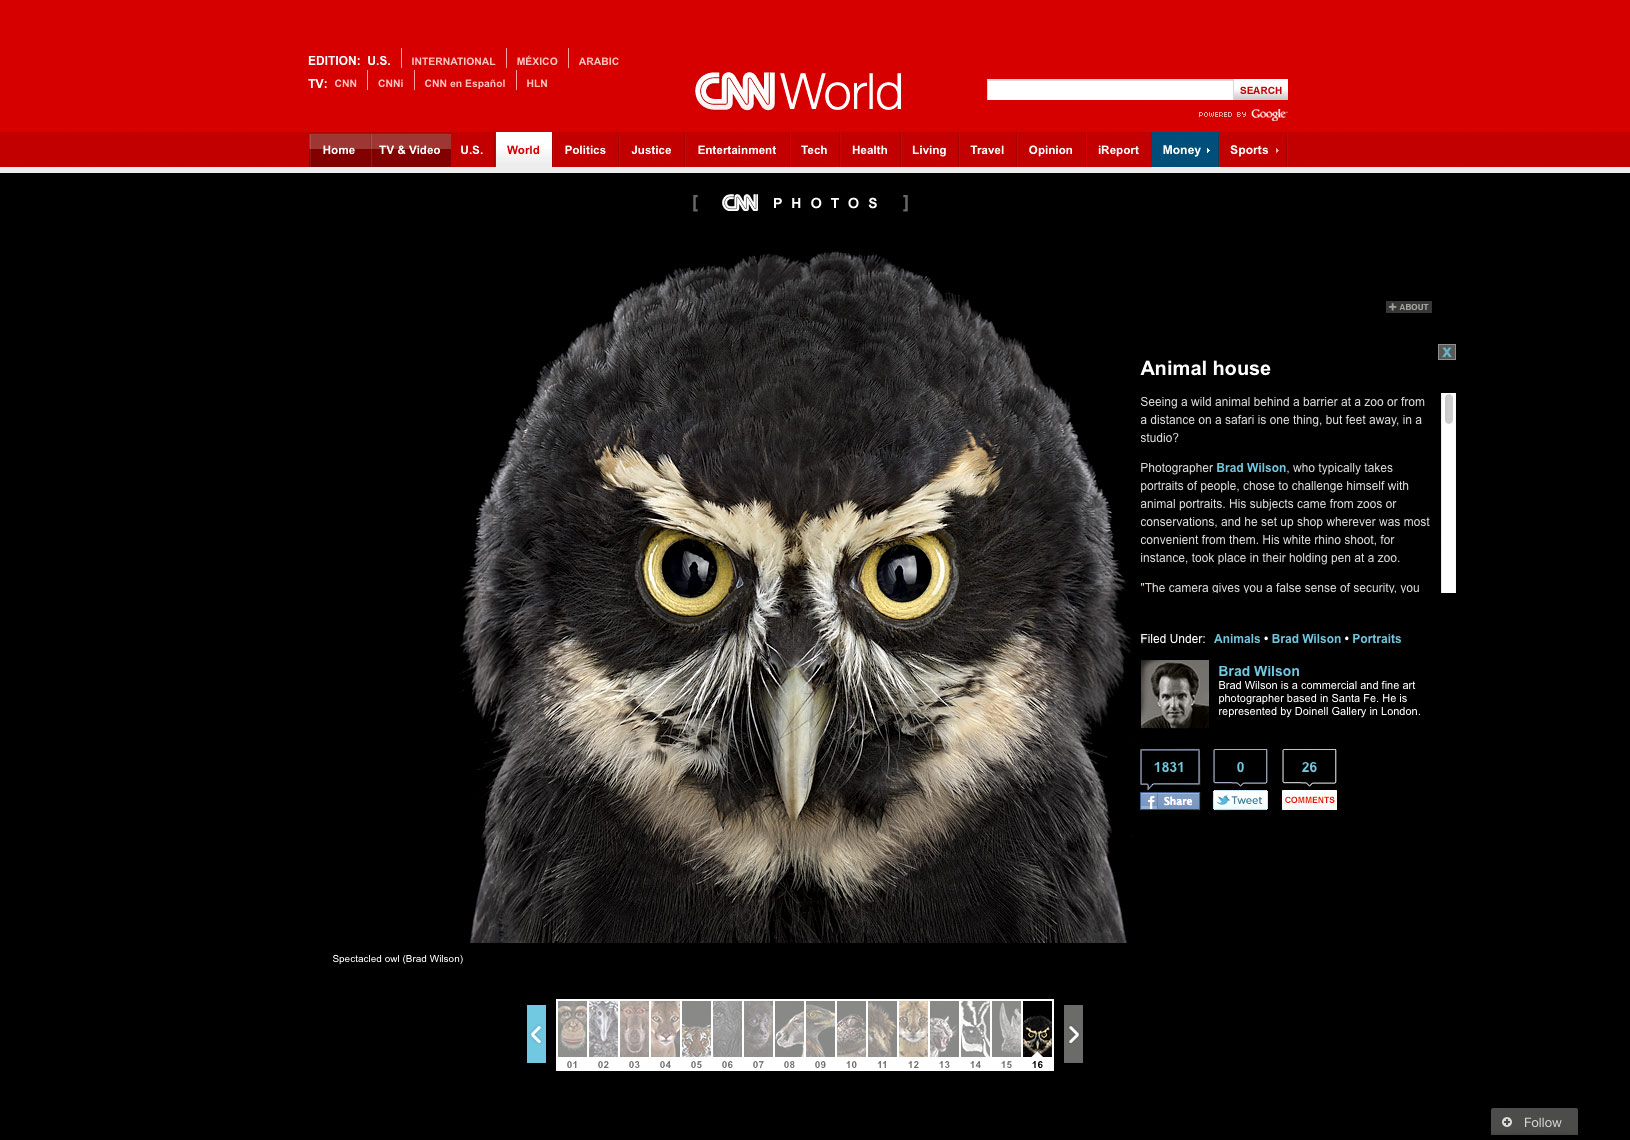 CNN article about fine art animal photographer Brad Wilson